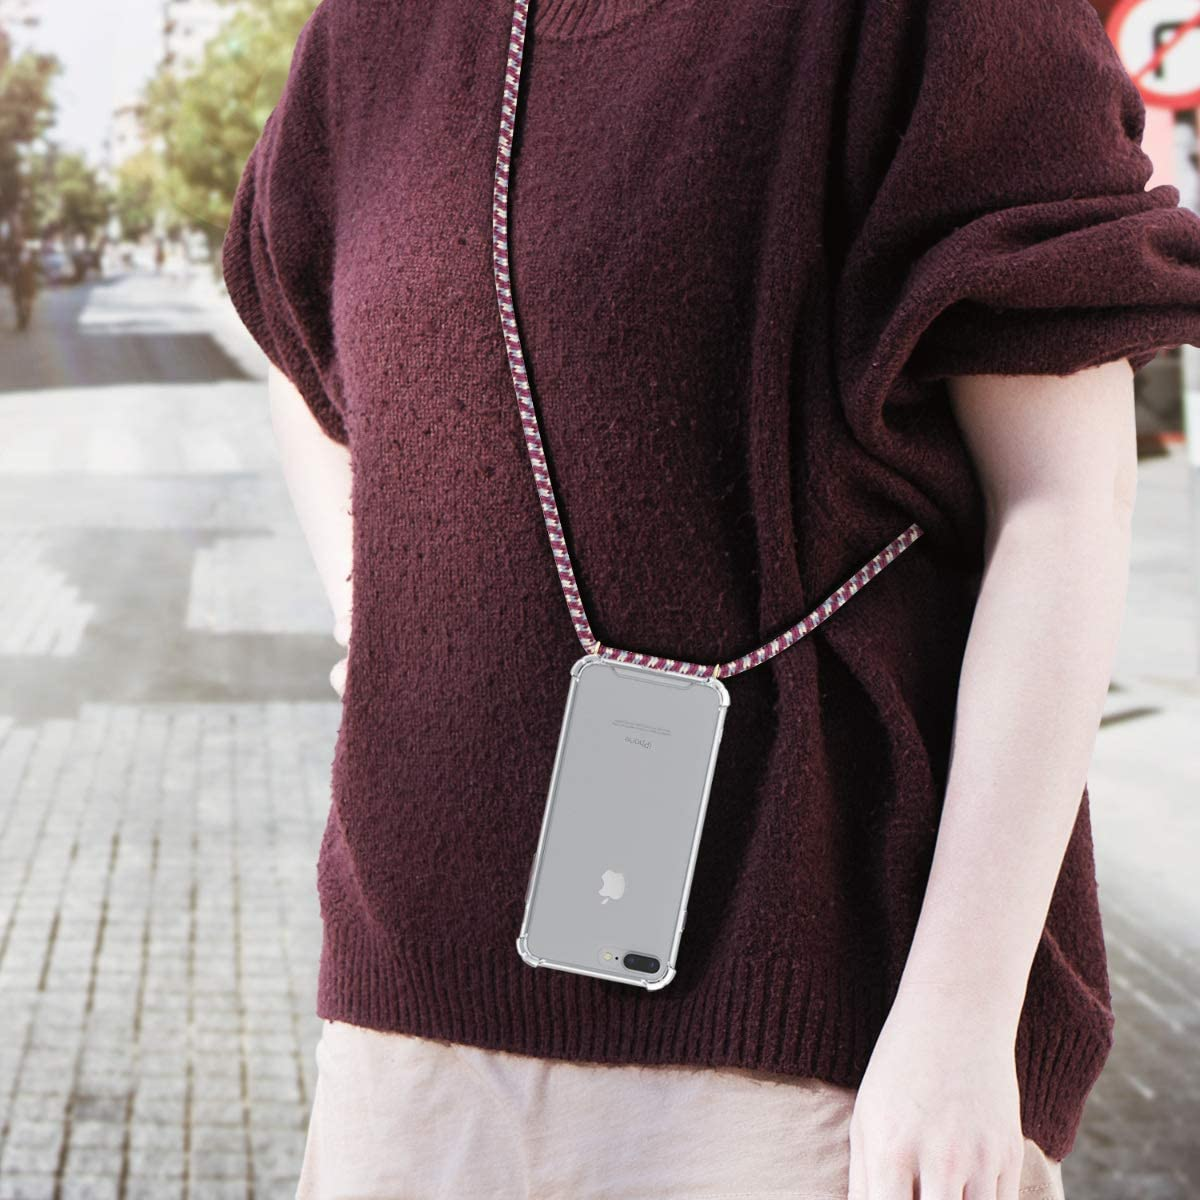 Transparent//Violet//Yellow kwmobile Crossbody Case Compatible with Apple iPhone 7 Plus Clear Transparent TPU Cell Phone Cover with Neck Cord Lanyard Strap 8 Plus